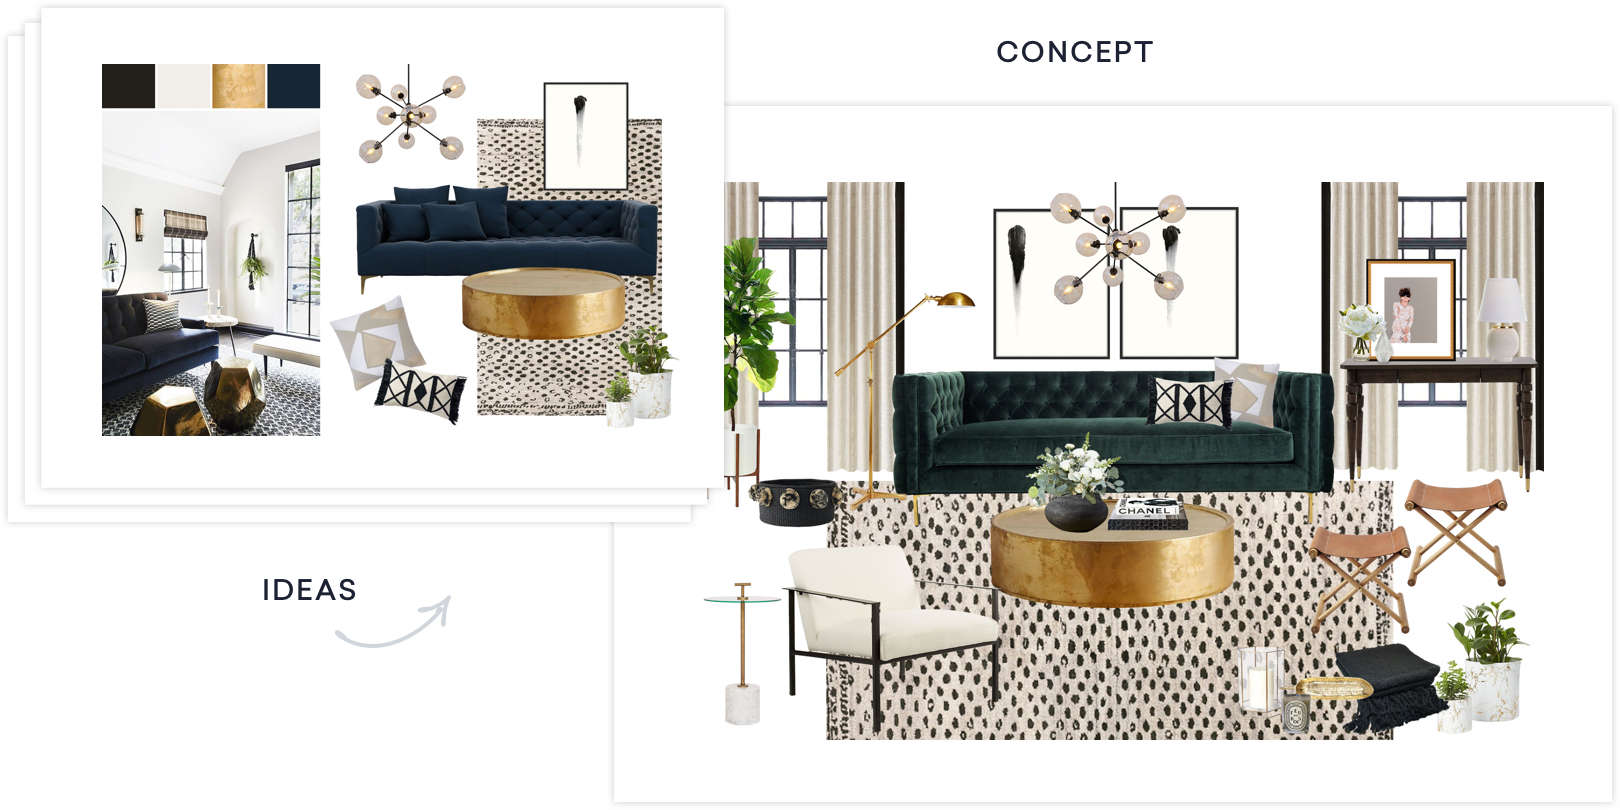 sample idea and concepts with personalized products picked by an interior designer